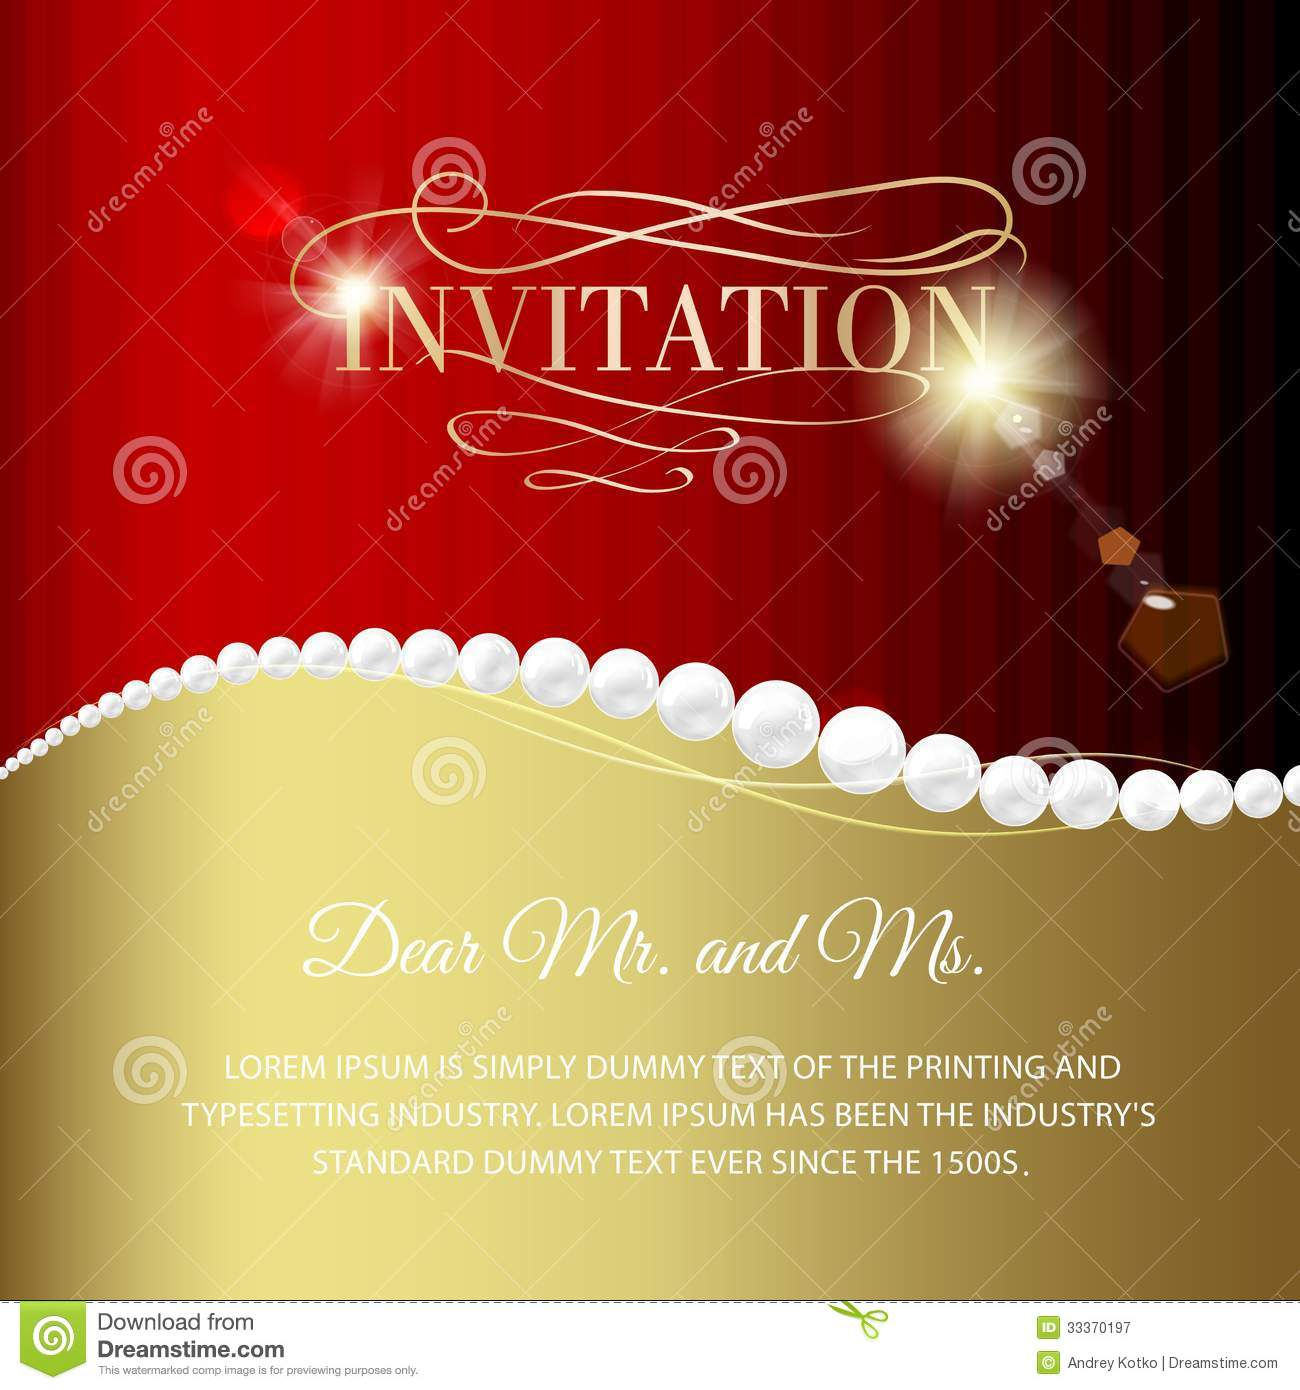 Jewelry Invitation Card Royalty Free Stock Photography